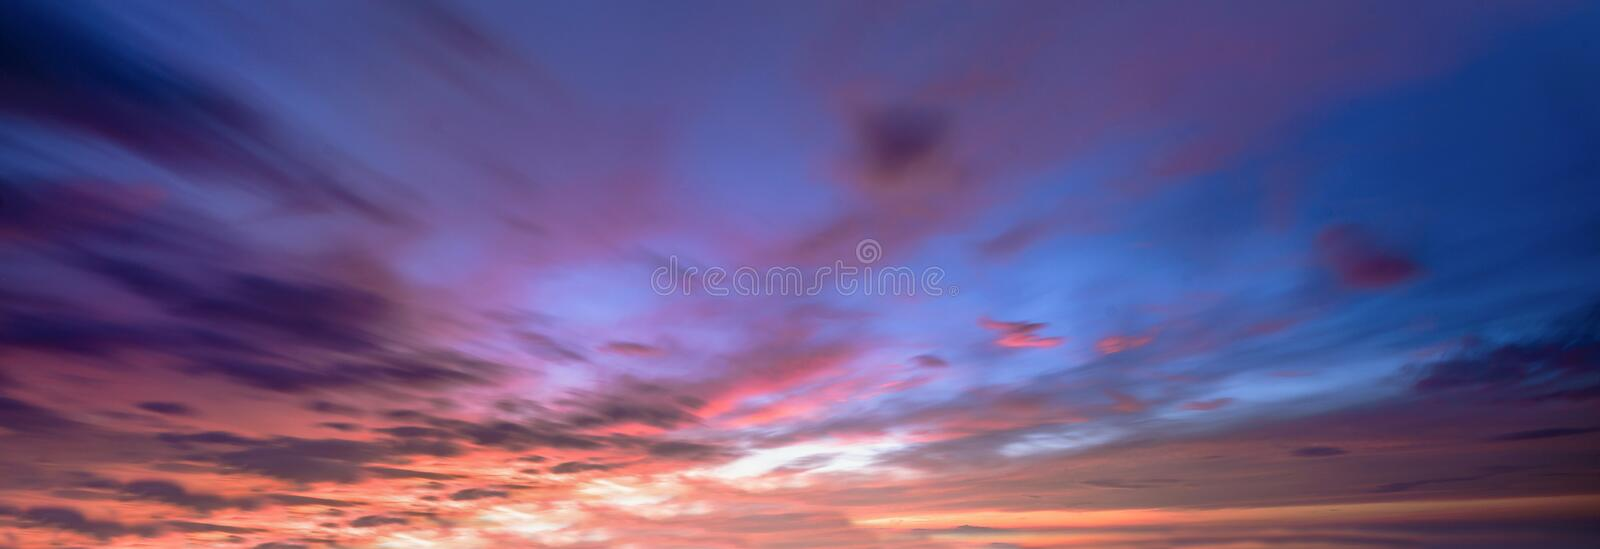 Background with magic of the clouds and the sky at dawn, sunrise, sunset royalty free stock photo